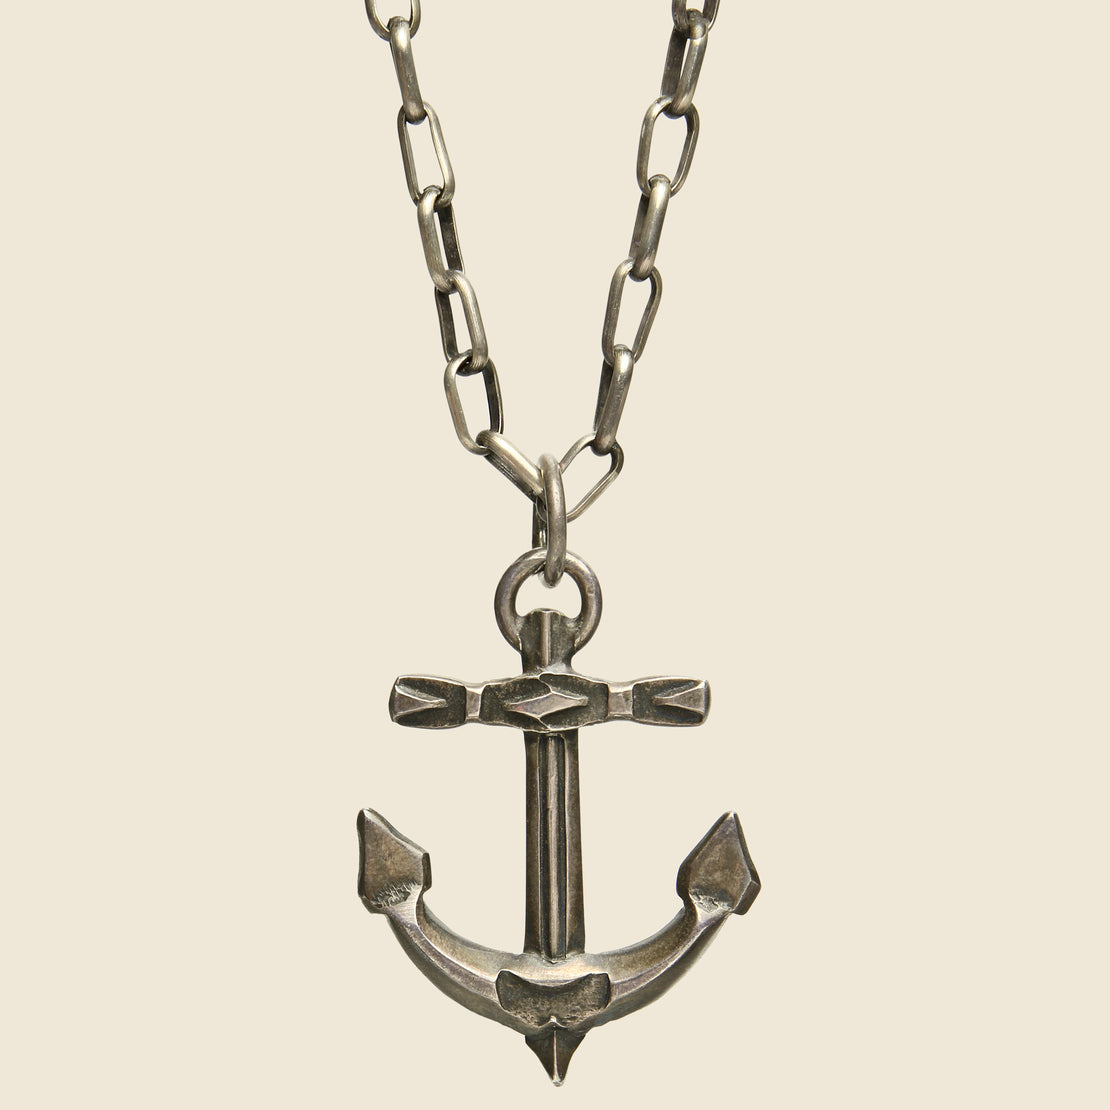 Smith Bros. Trading Co. Stamped Anchor Pendant - Sterling Silver